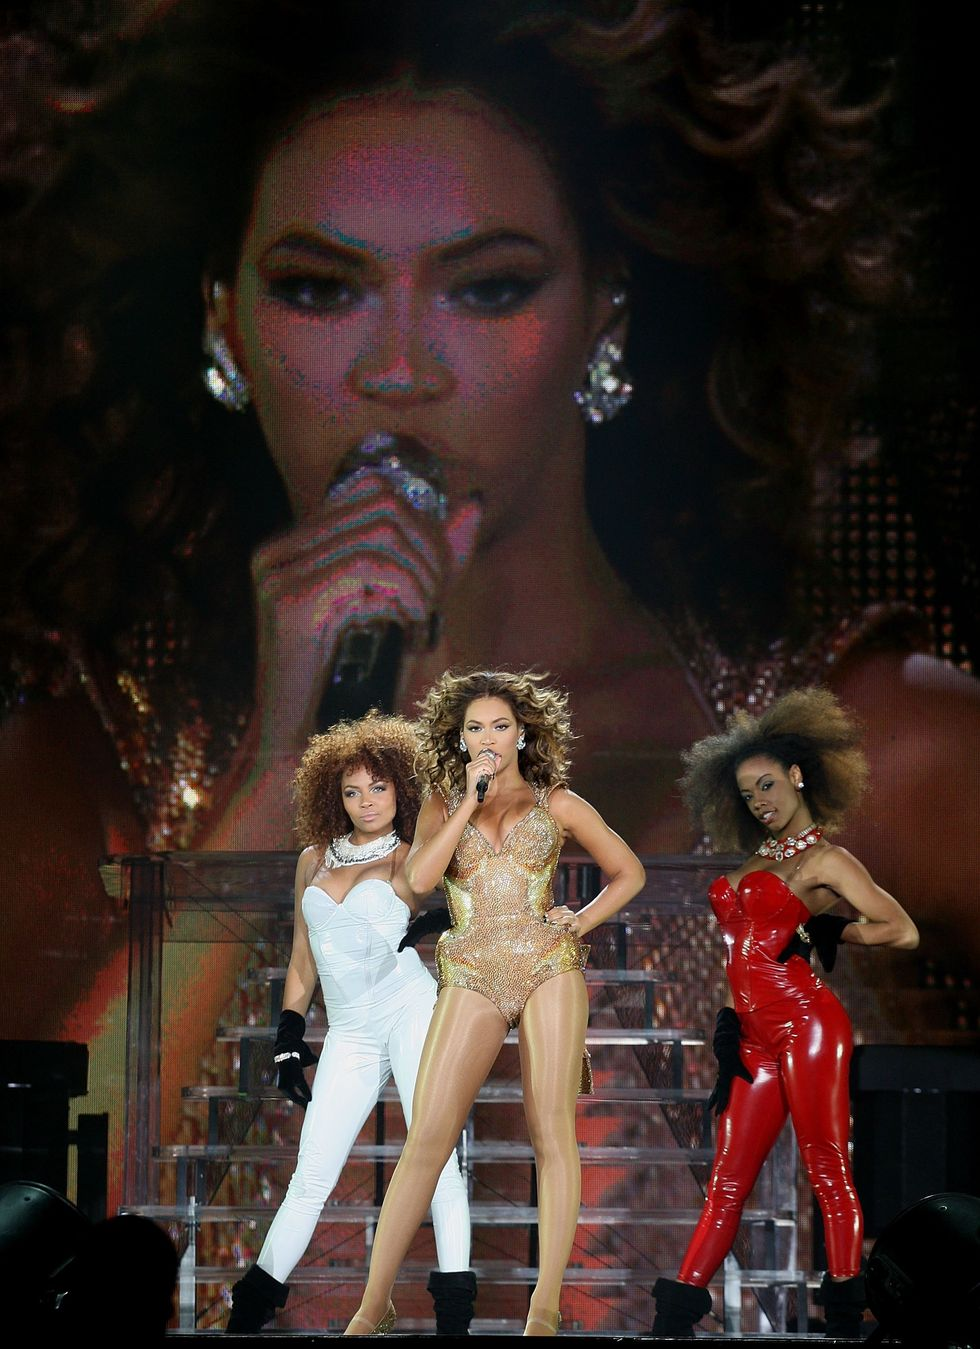 beyonce-performs-at-saitama-super-arena-01